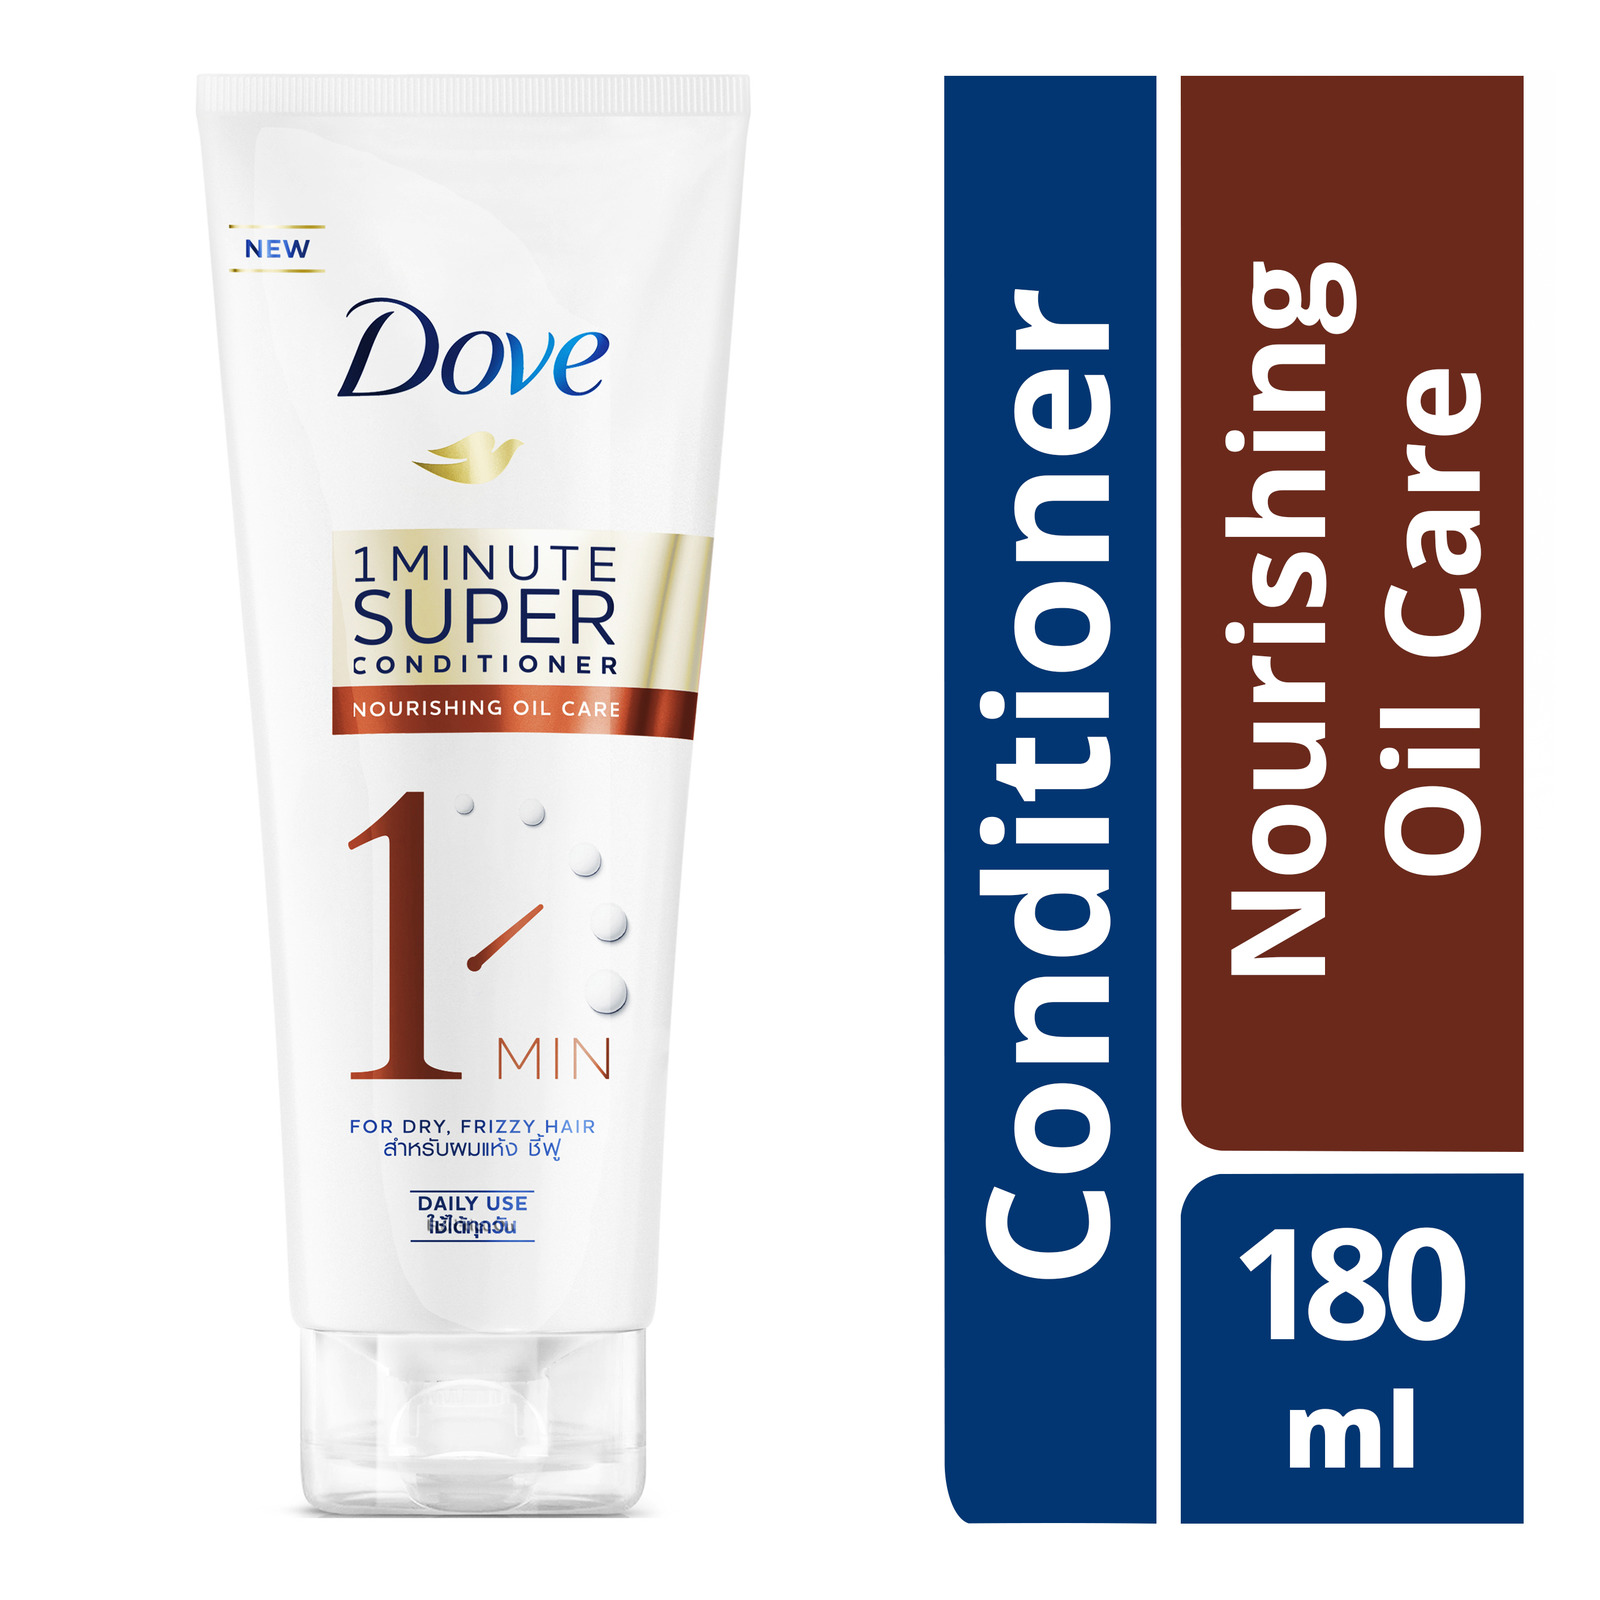 Dove 1 Minute Super Conditioner - Nourishing Oil Care